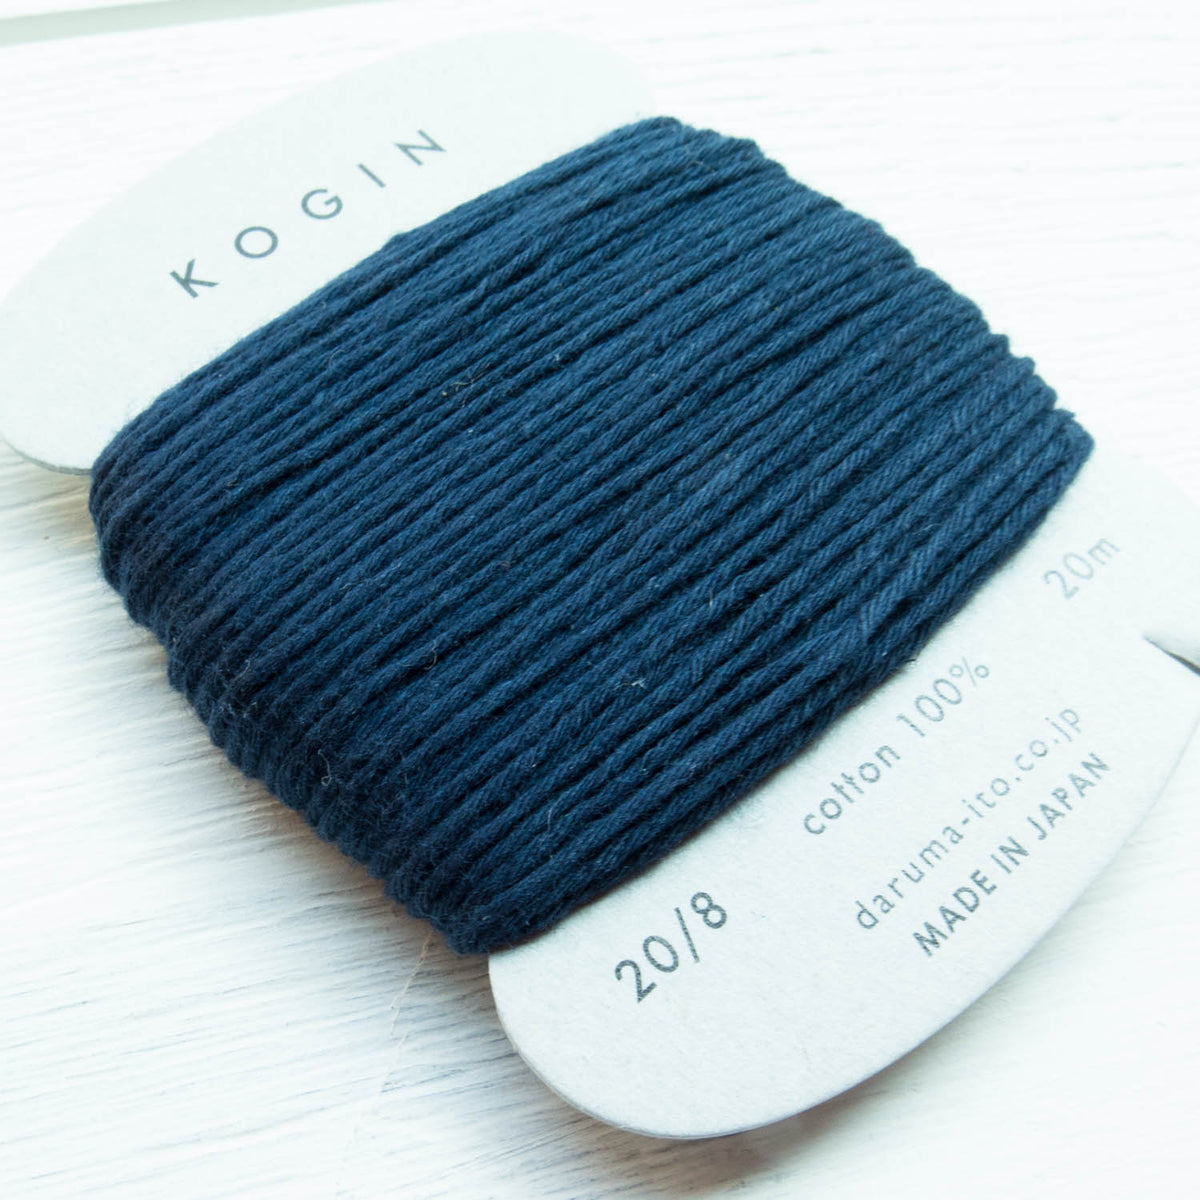 Daruma Kogin Sashiko Thread - Dark Navy (no. 7) Sashiko - Snuggly Monkey